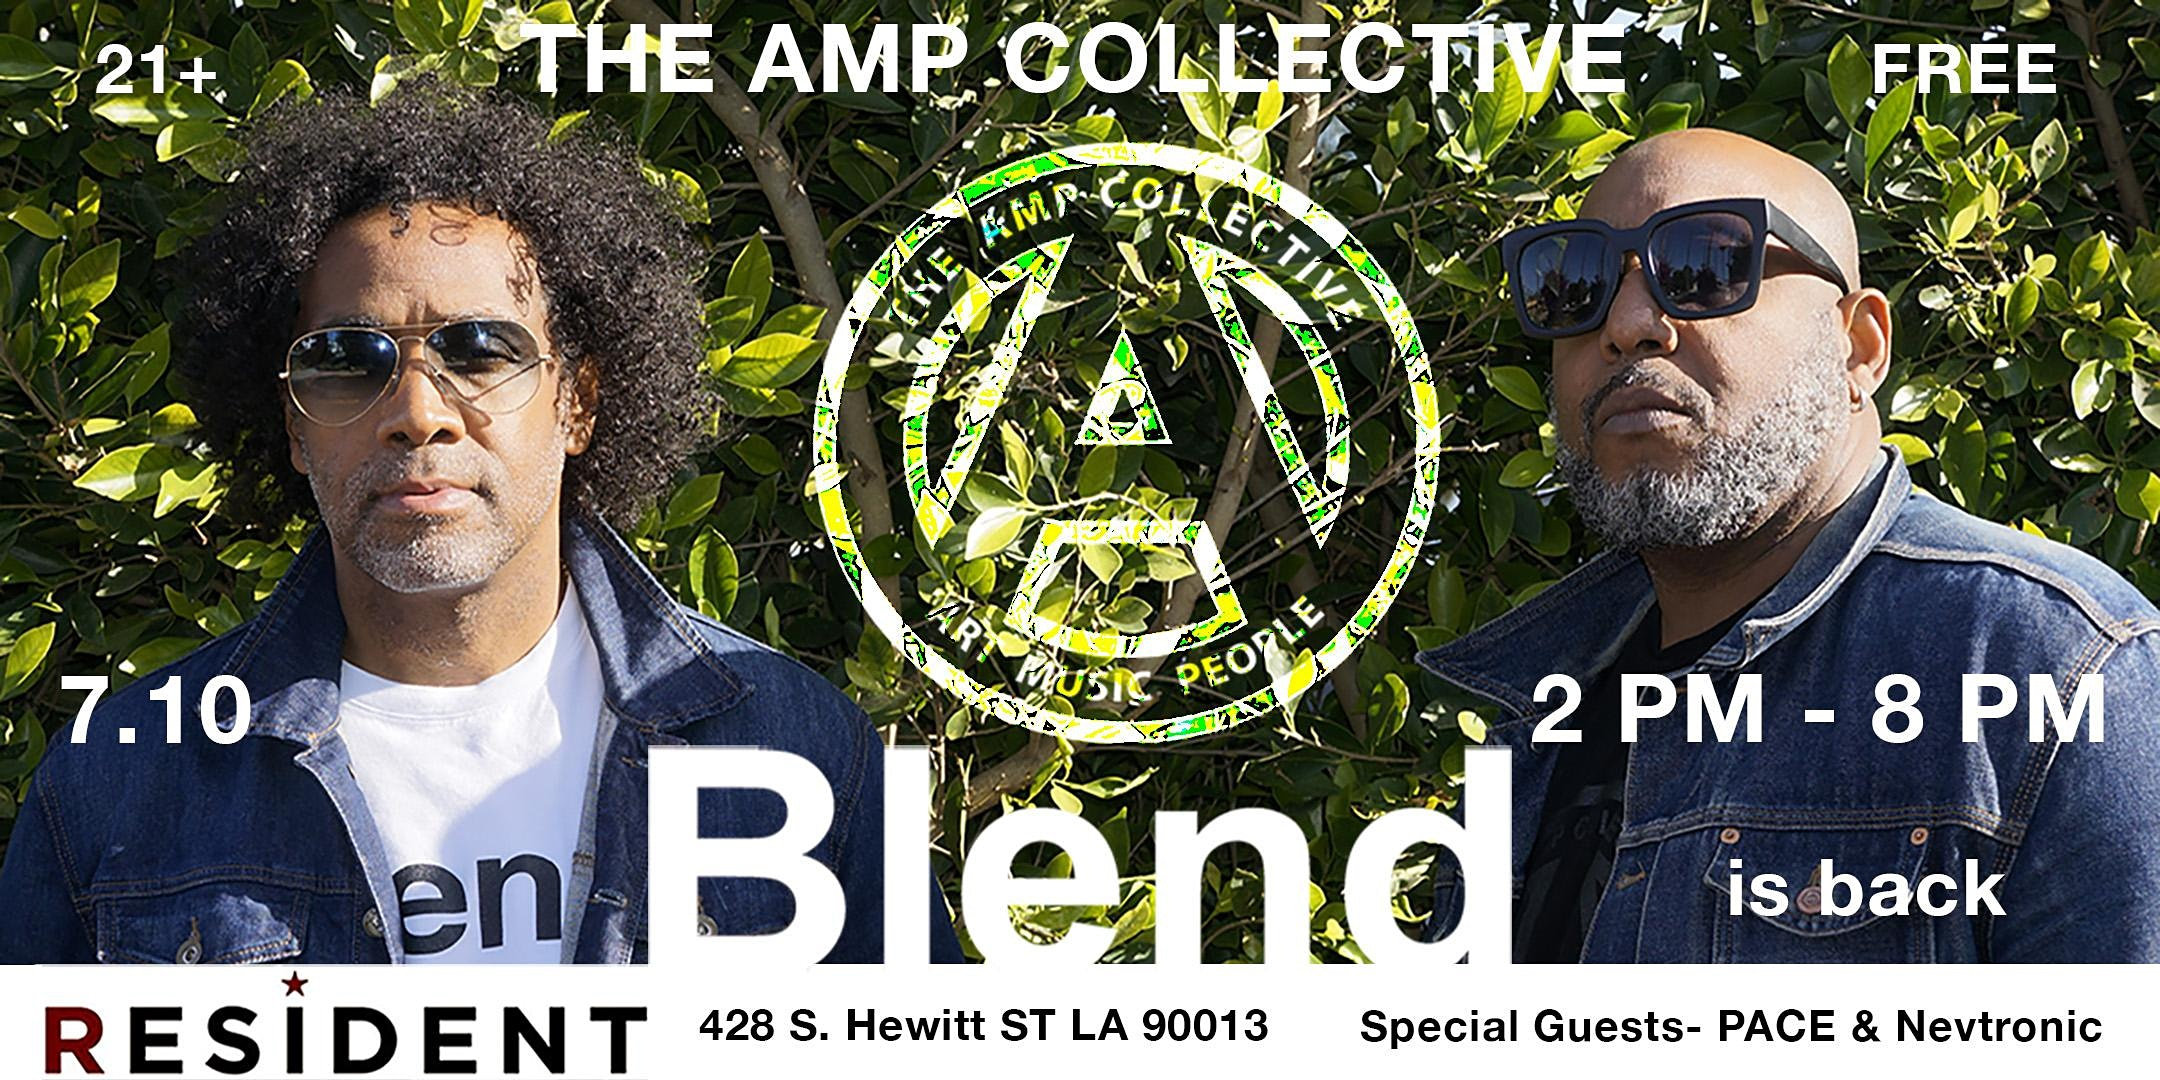 The AMP Collective's Blend Day Party returns to Resident